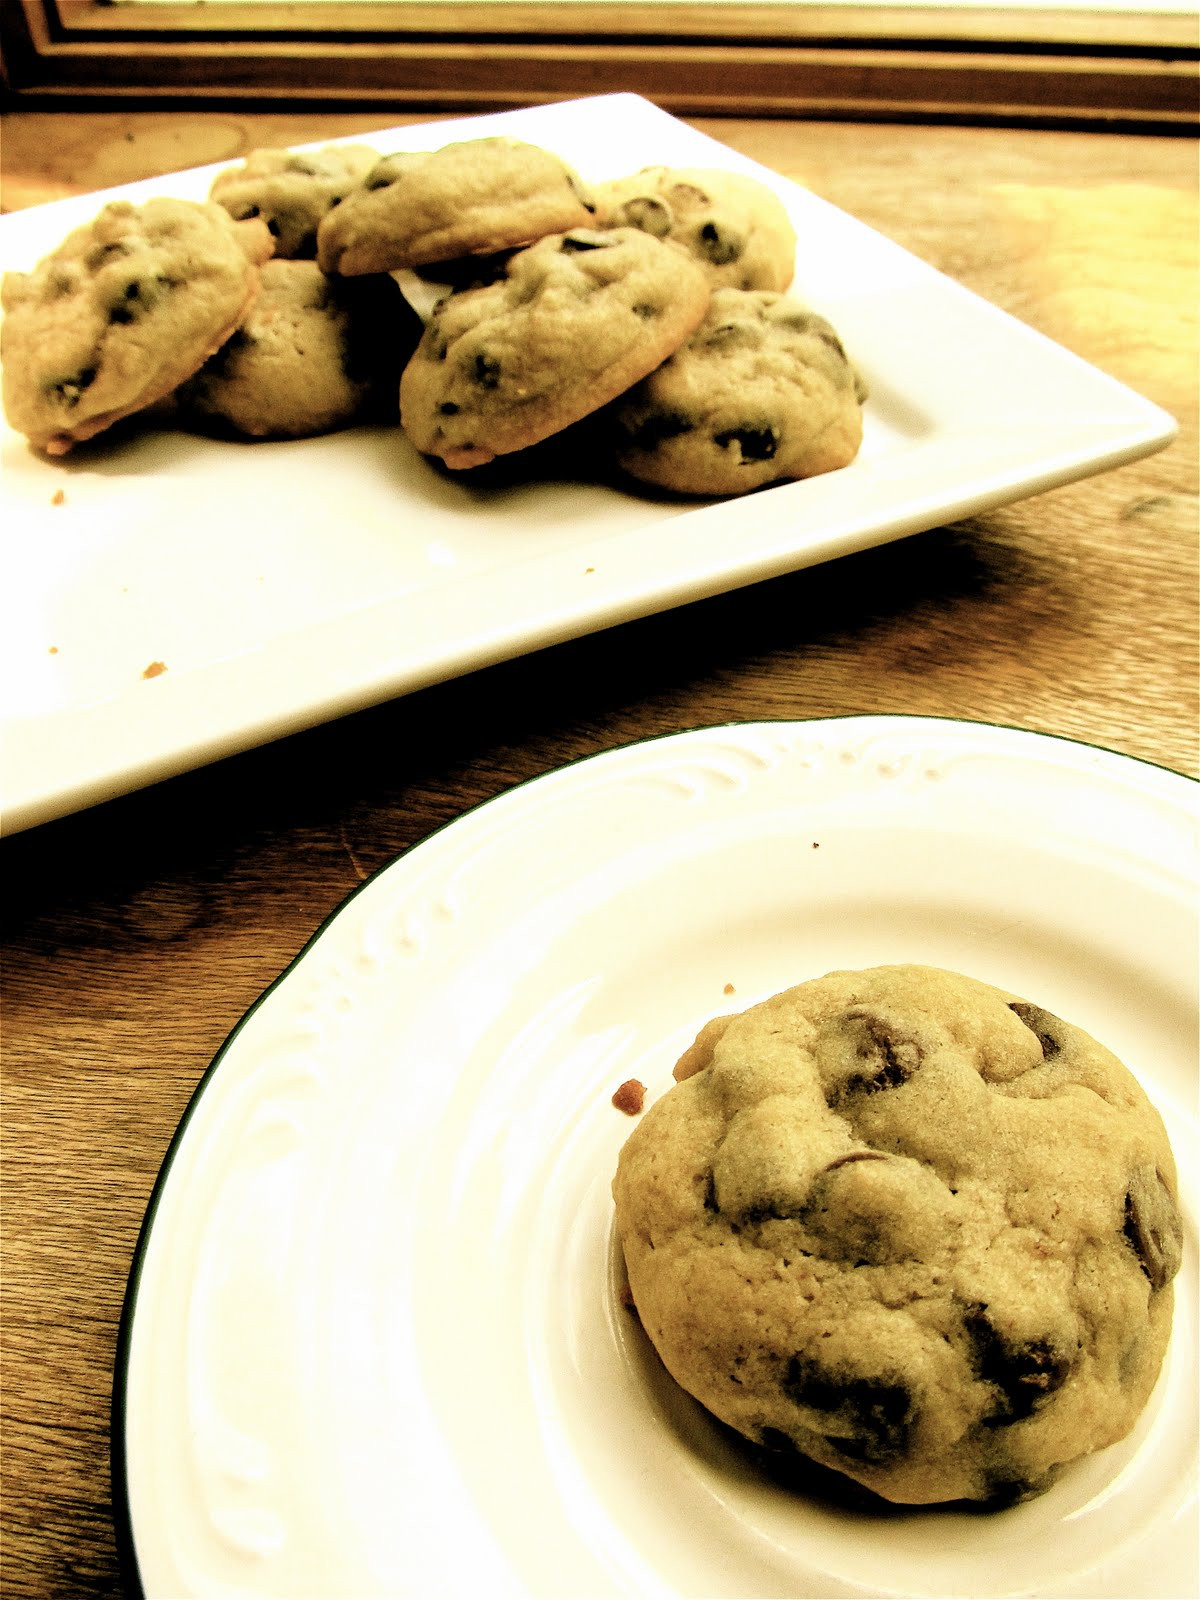 Cakey Chocolate Chip Cookies  Mary Quite Contrary Bakes Soft and Cakey Chocolate Chip